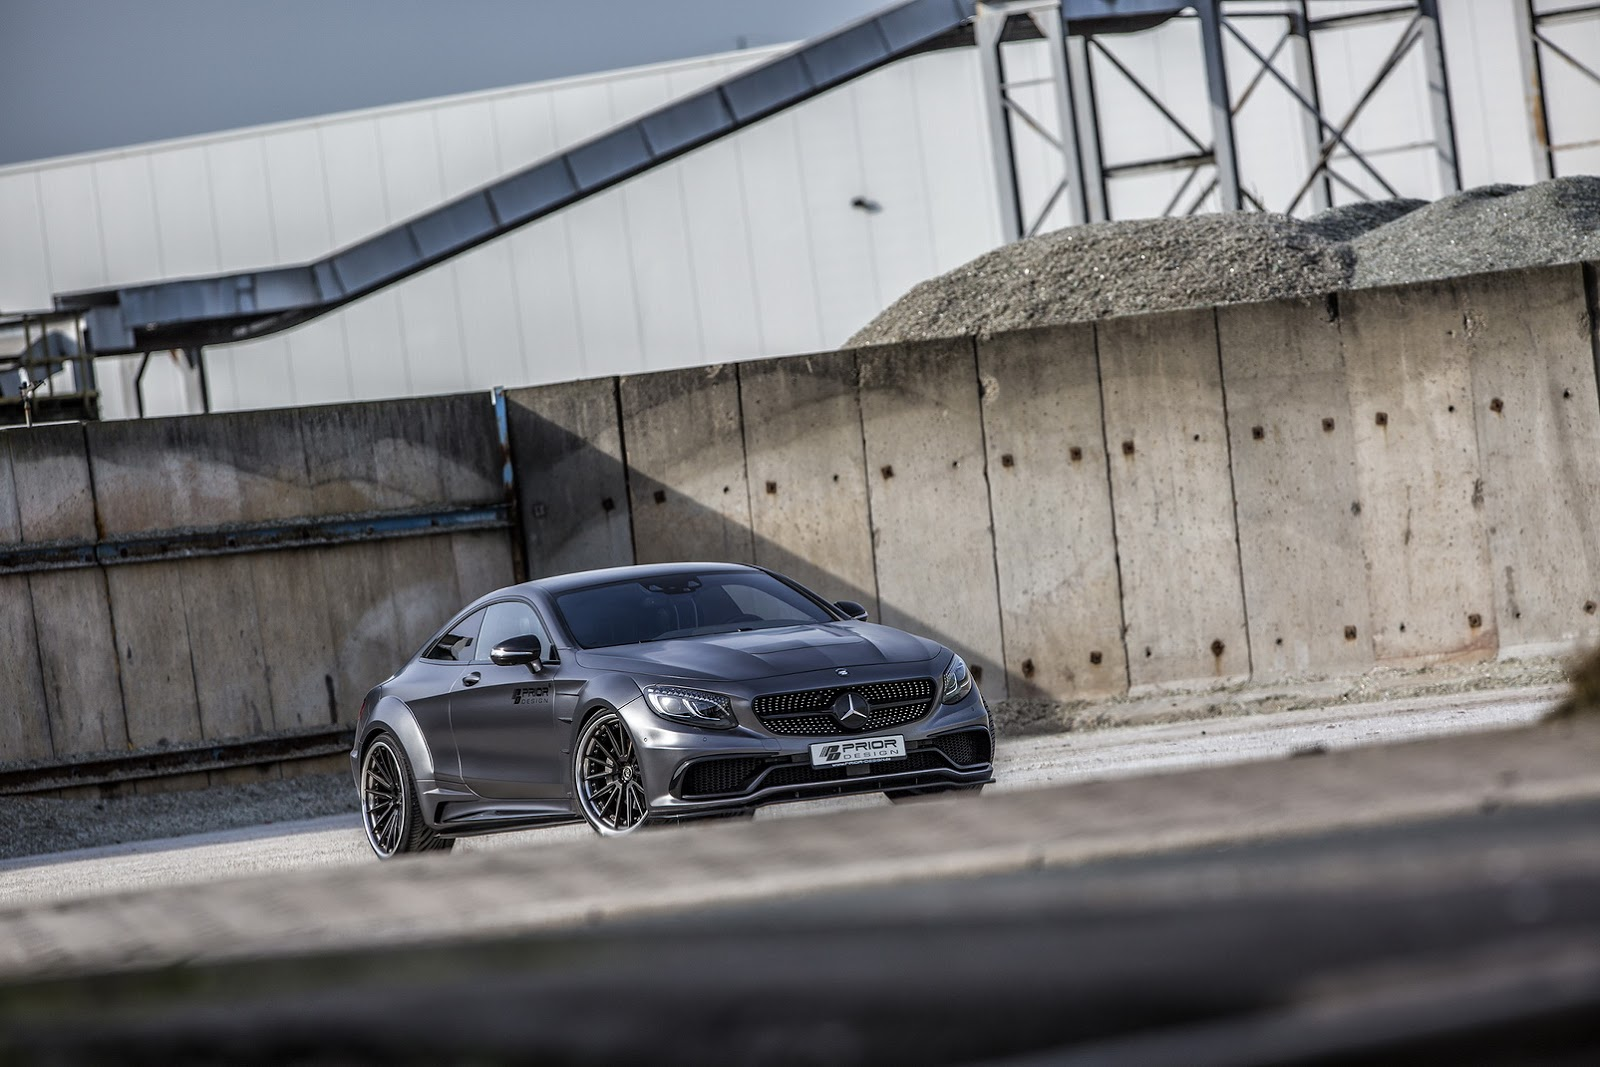 Mercedes C Class Coupe >> Modifikasi Mercedes Benz C Class Coupe Lebih Agresif By